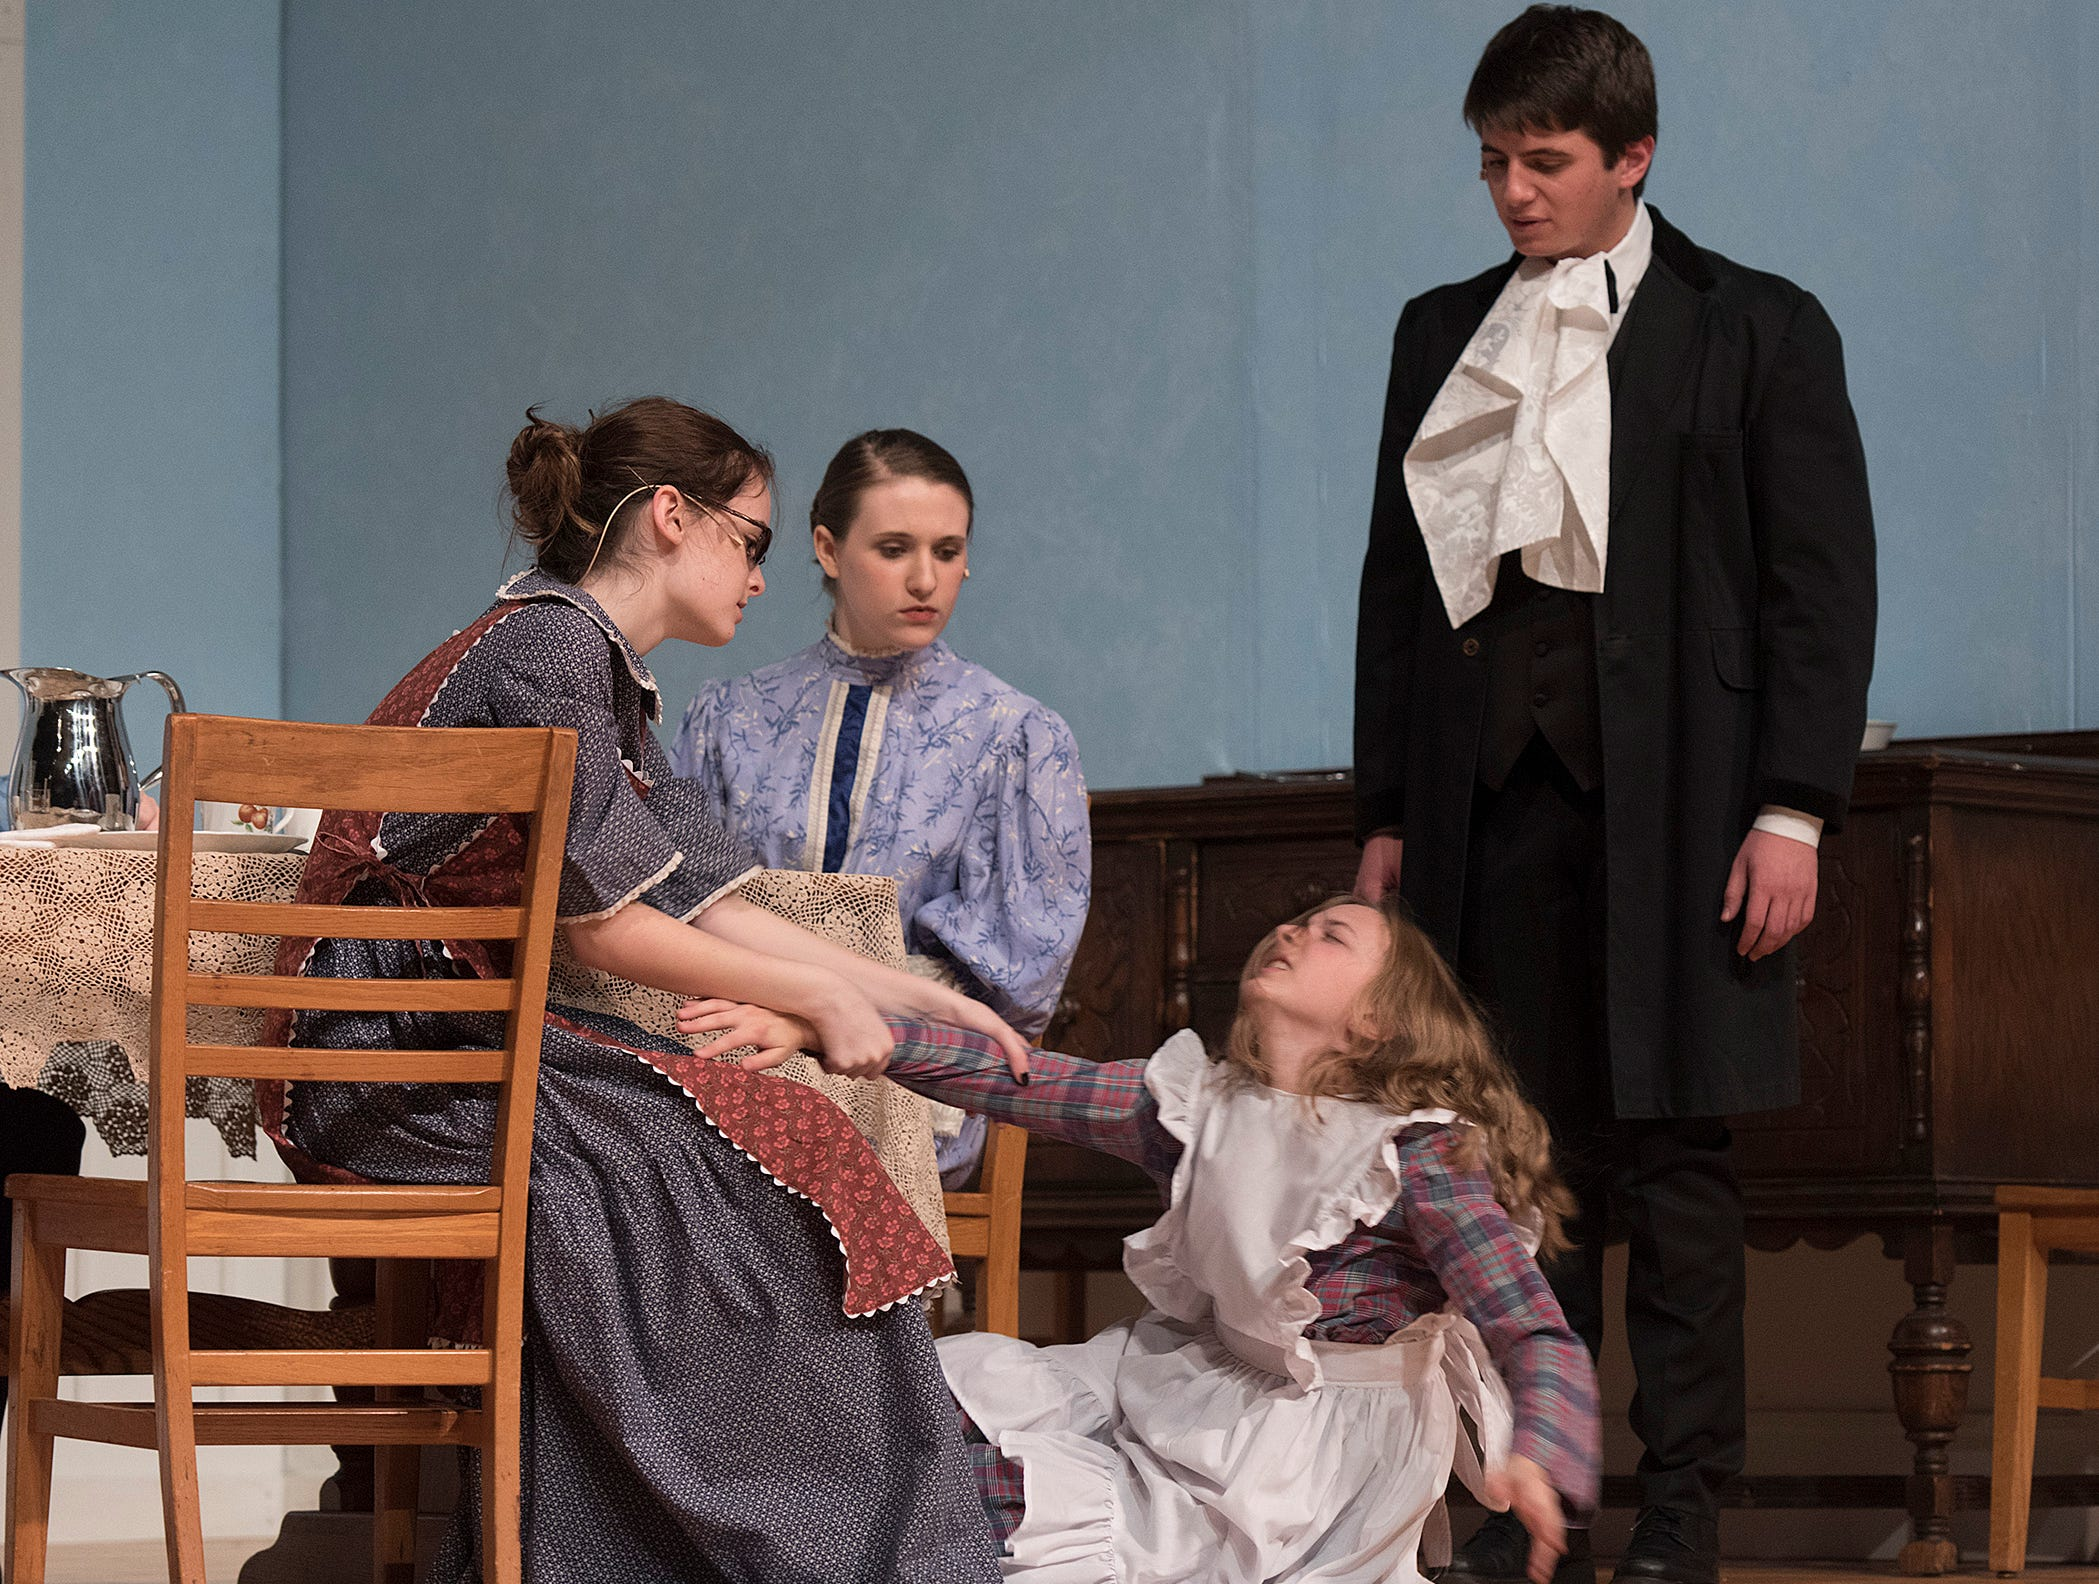 Annie Sullivan wont allow Helen's tantrum to disrupt the family meal in spite of the protests of parents Kate Keller (Emma Pickett) and Captain Keller (Charles Hilu).